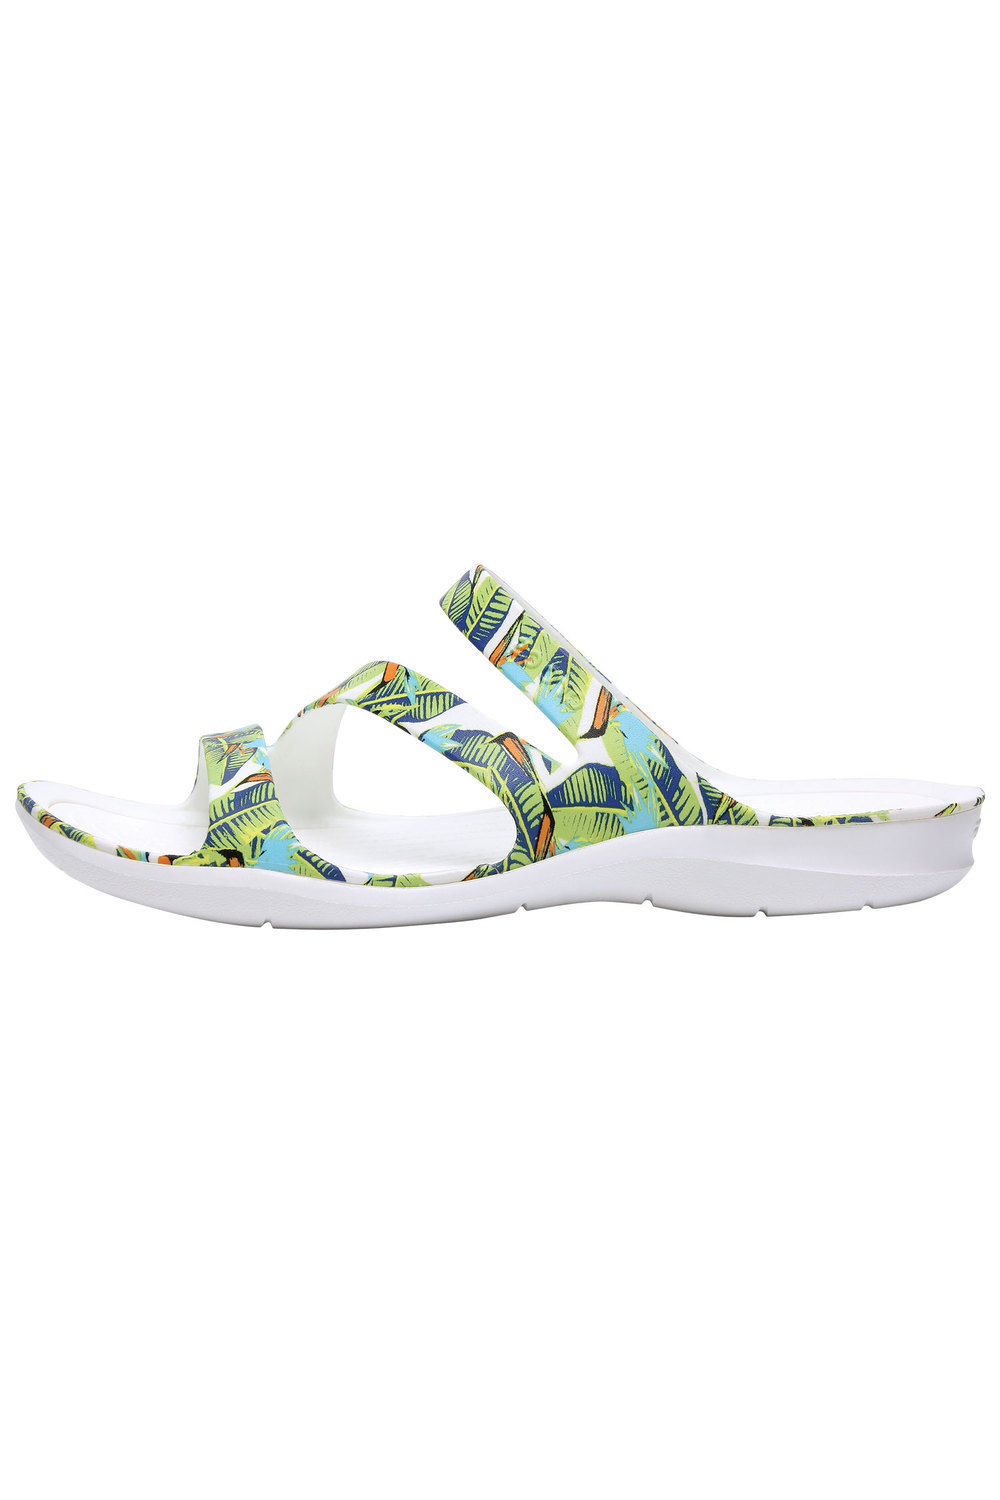 995ca150c9a8 Crocs Swiftwater Graphic Sandal Online